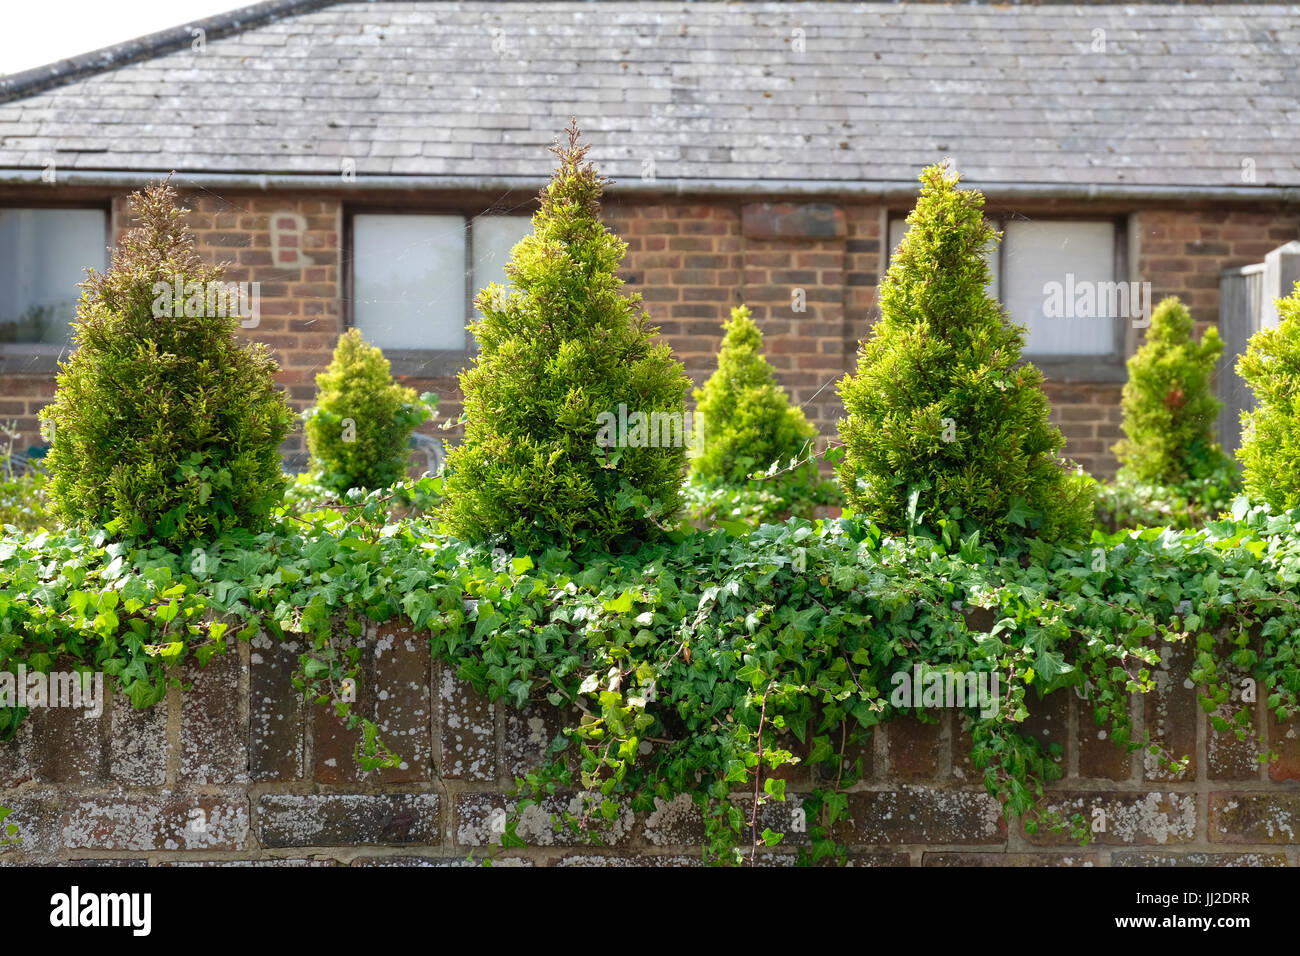 Dwarf Conifers and Ivy planted on top of old low brick wall - Stock Image